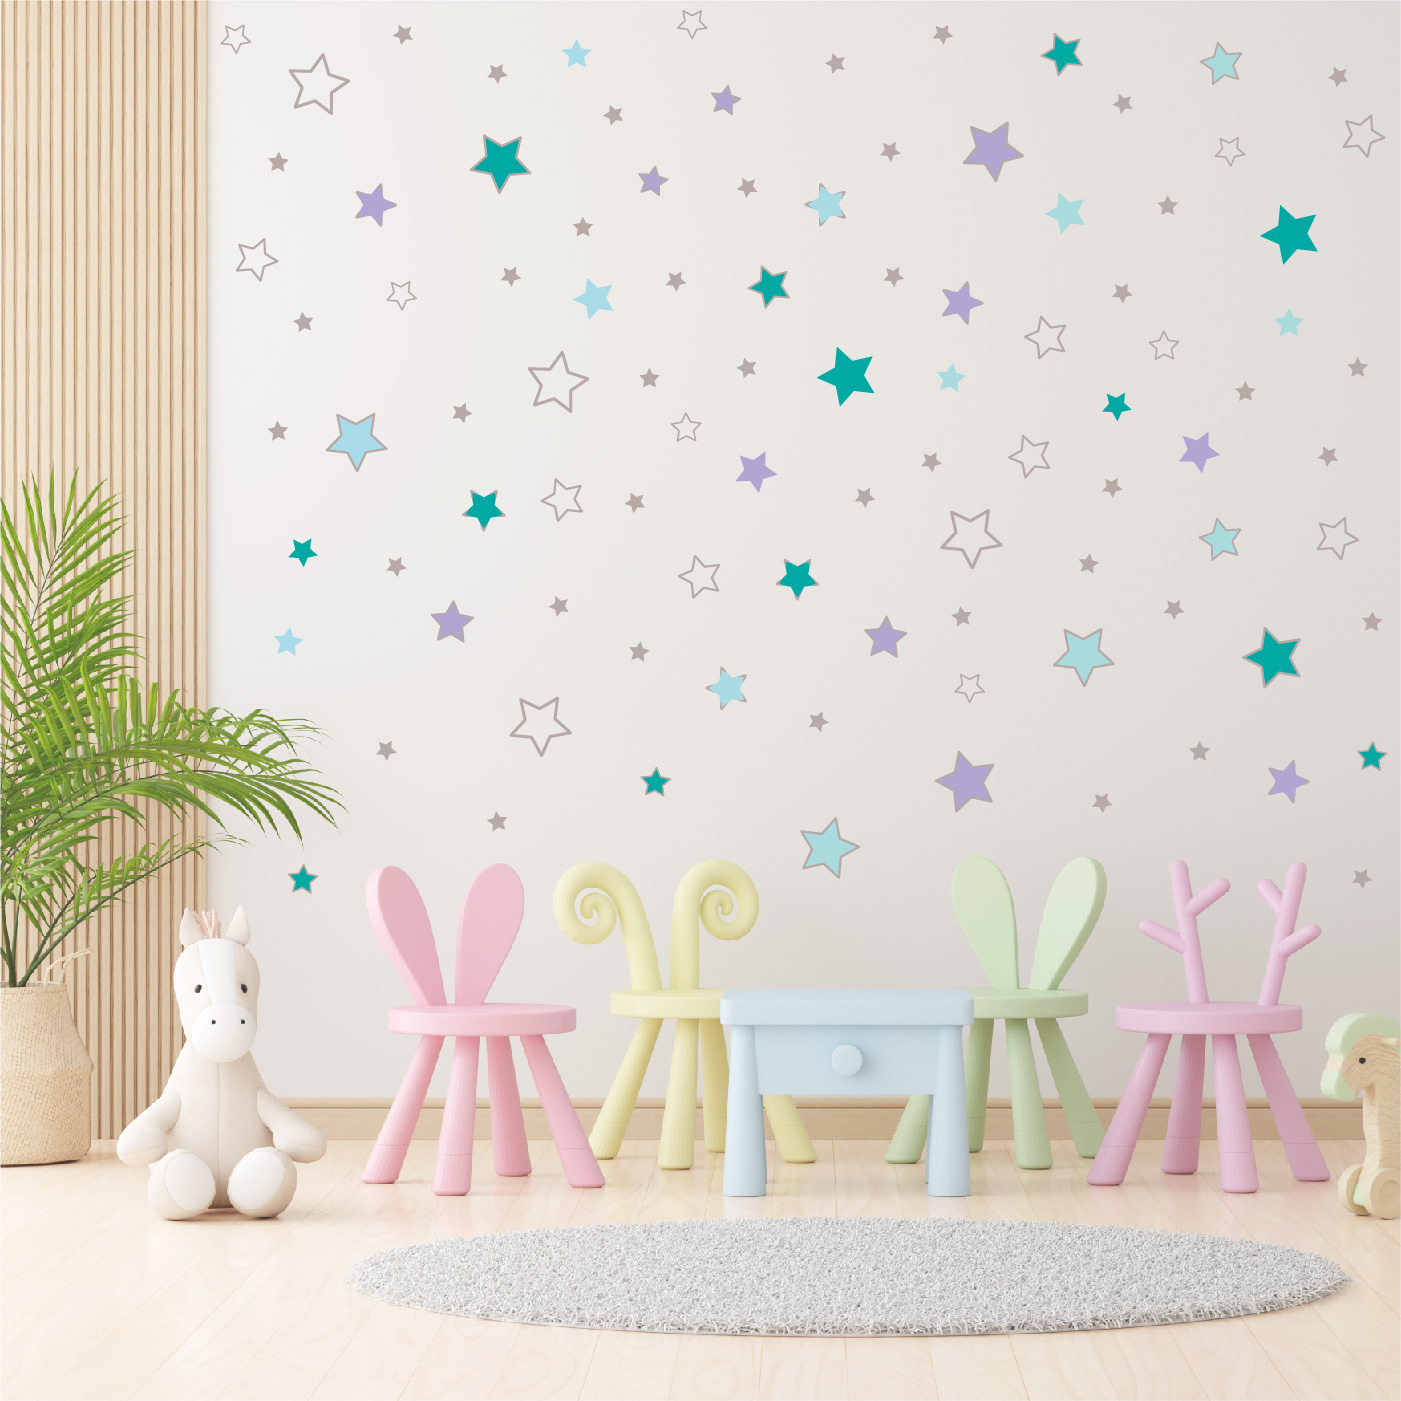 Wall stickers - Turquoise stars